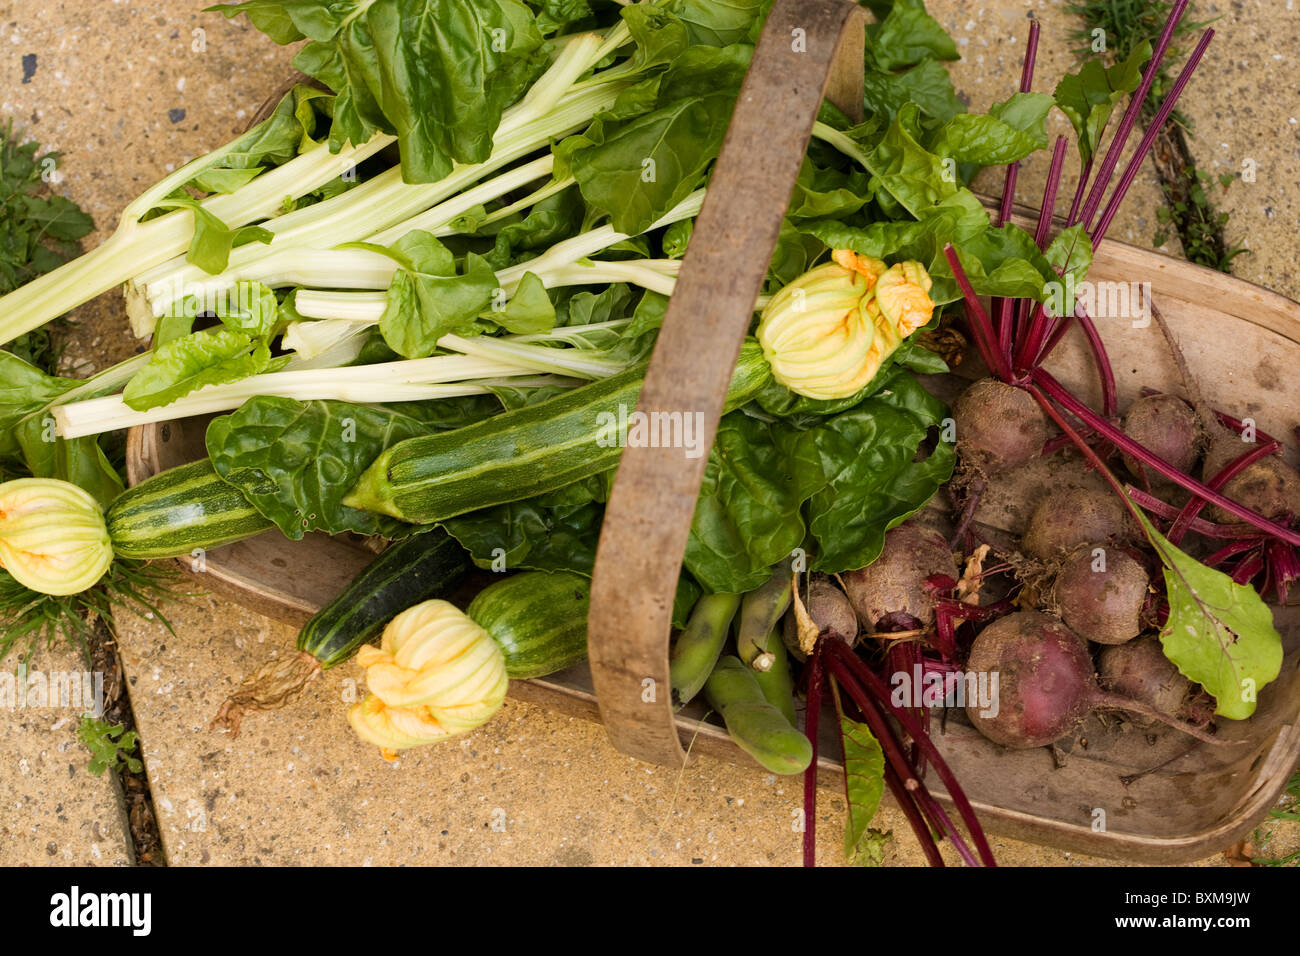 Trug of fresh produce, courgettes, beetroot, spinach, chard and broad beans - Stock Image